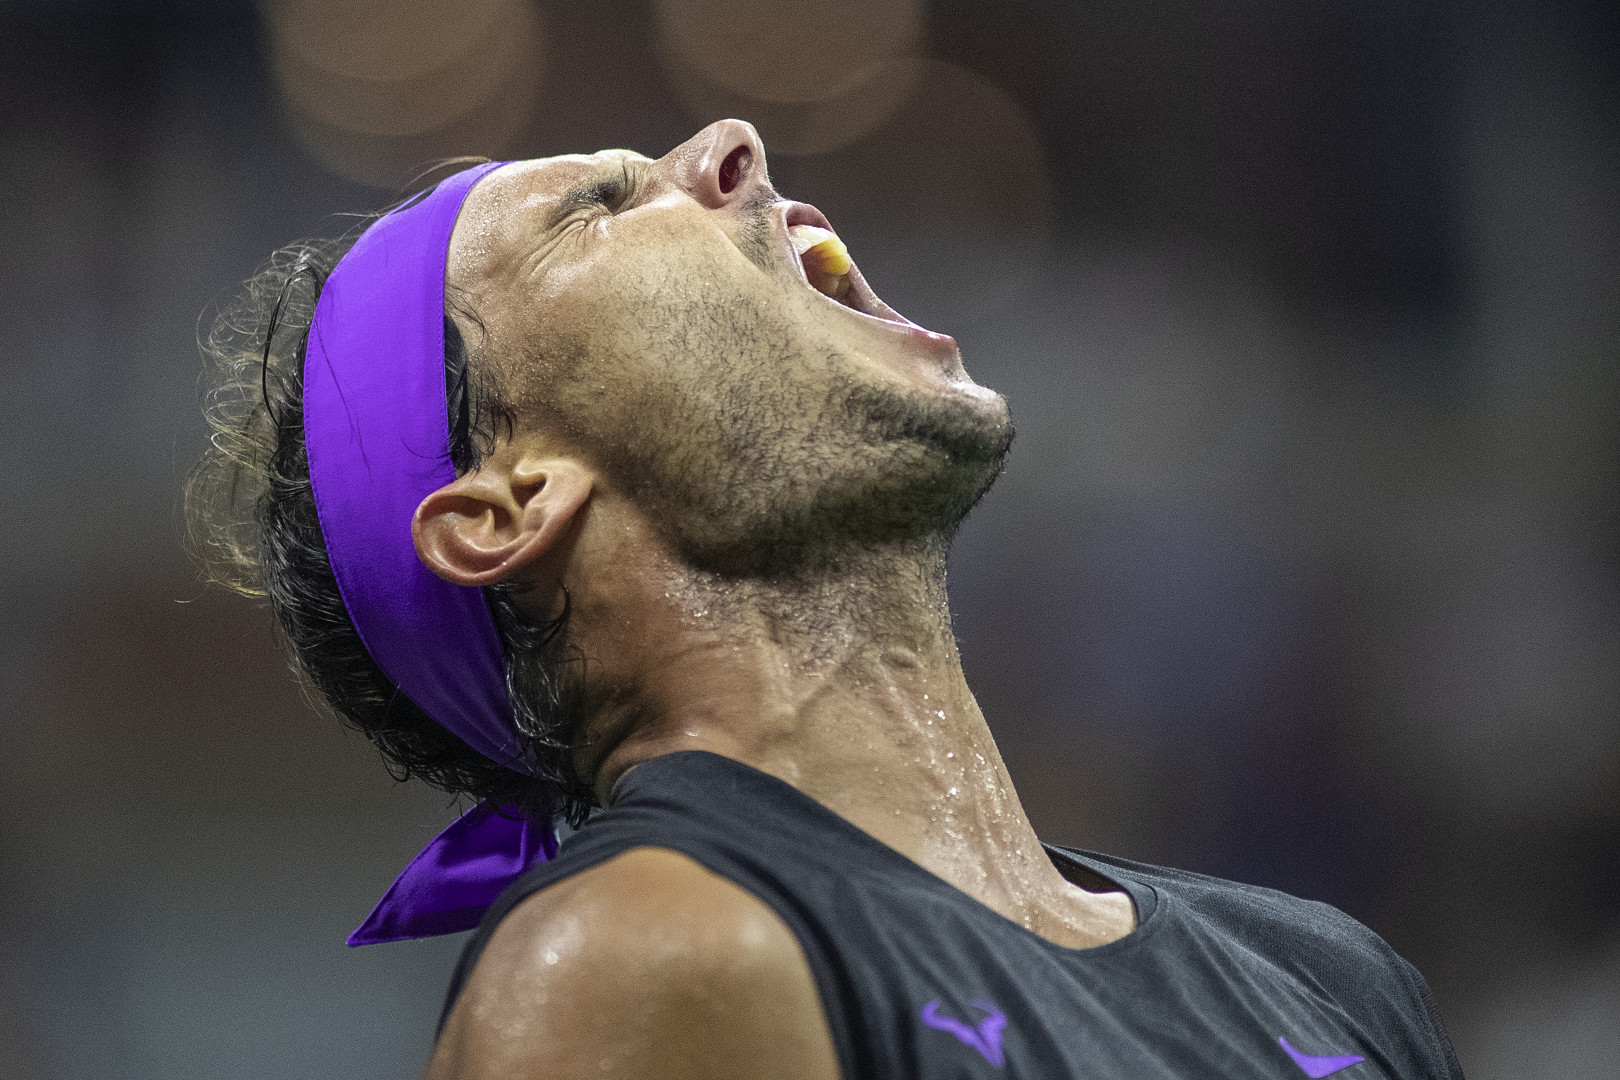 Rafael Nadal of Spain celebrates a point against Marin Cilic of Croatia in the Men's Singles round four match on Arthur Ashe Stadium during the 2019 US Open Tennis Tournament. (optimized)